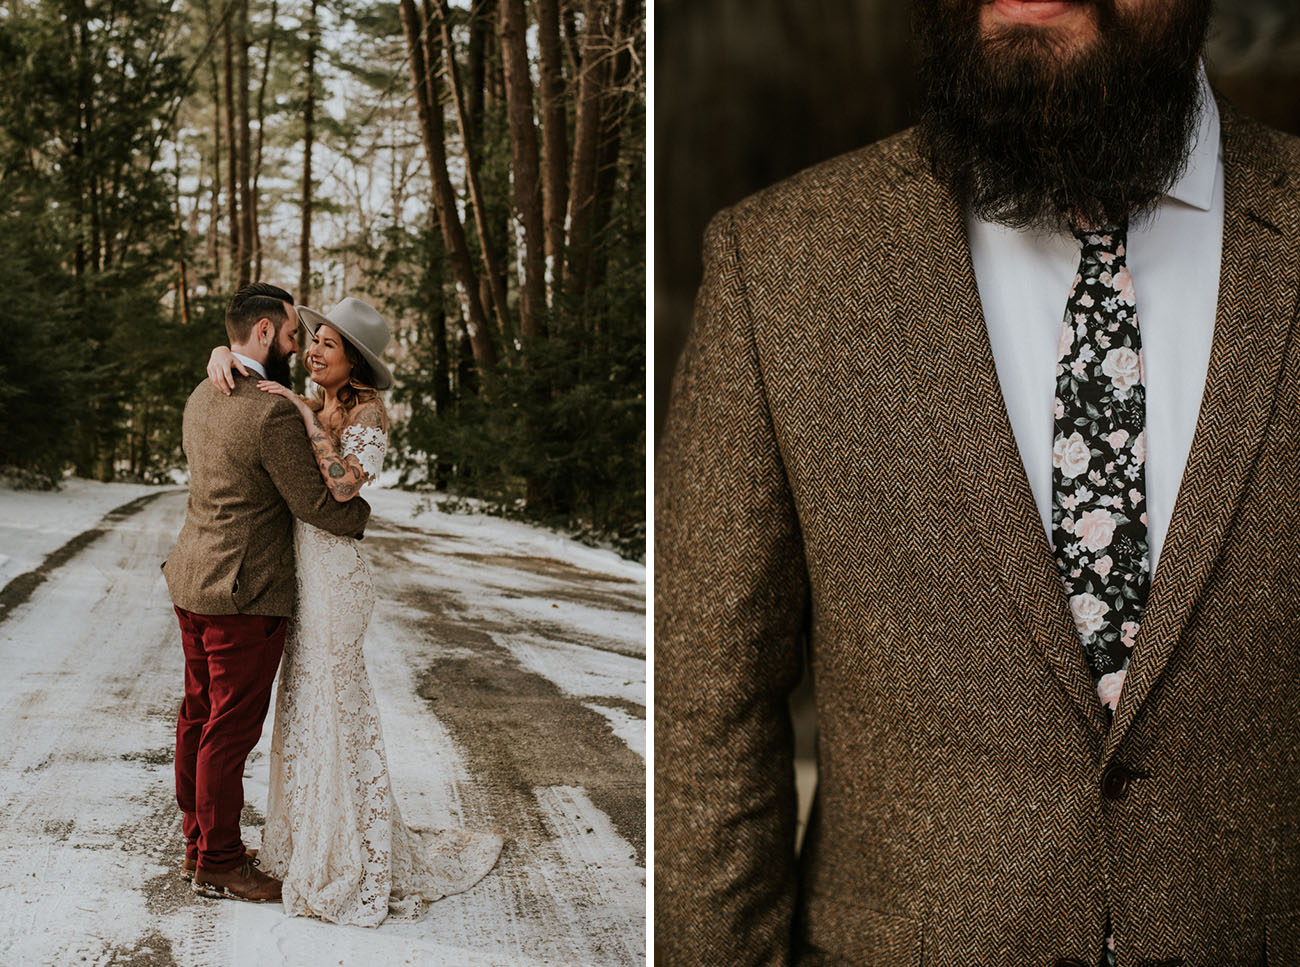 A floral tie is a fresh take on a traditional one and the bride tried on a hat